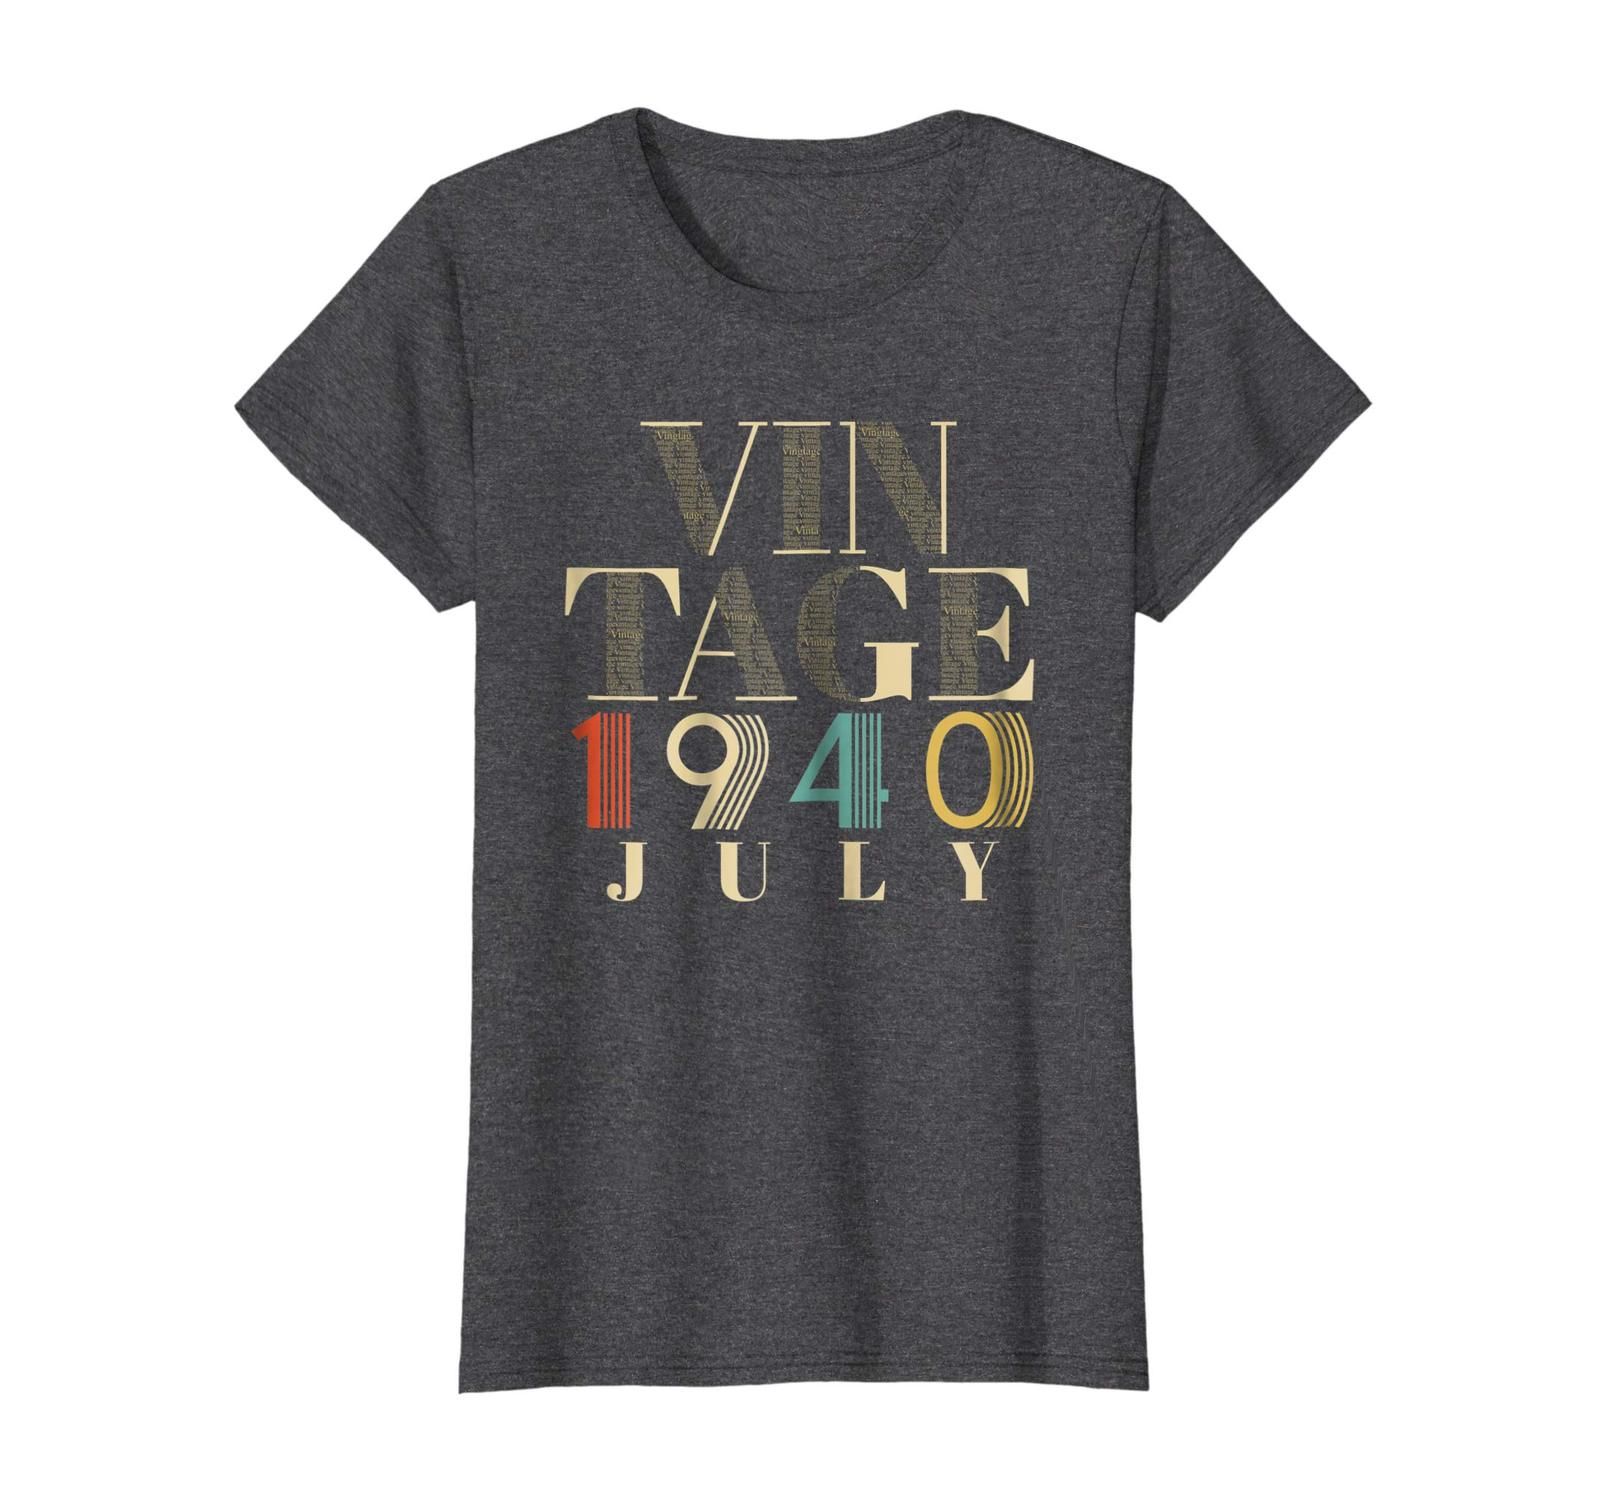 Brother Shirts - Retro Classic Vintage Born In JULY 1940 Aged 78 Years Old Wowen